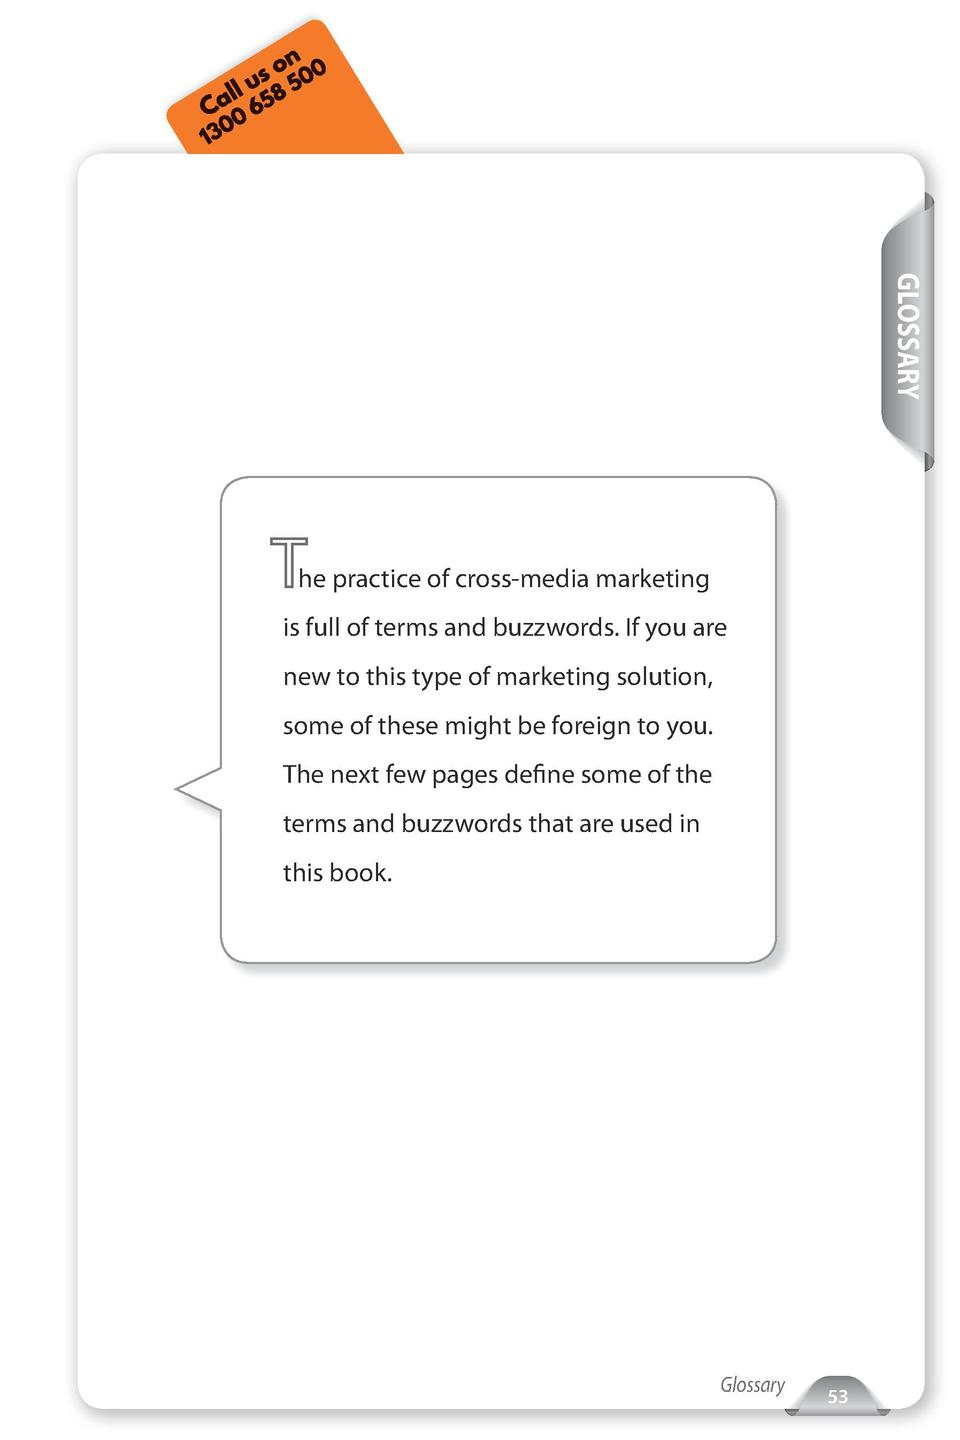 Call Us  Tel  212-479-5166  www.xmpie.com  GLOSSARY  he practice of cross-media marketing is full of terms and buzzwords. ...